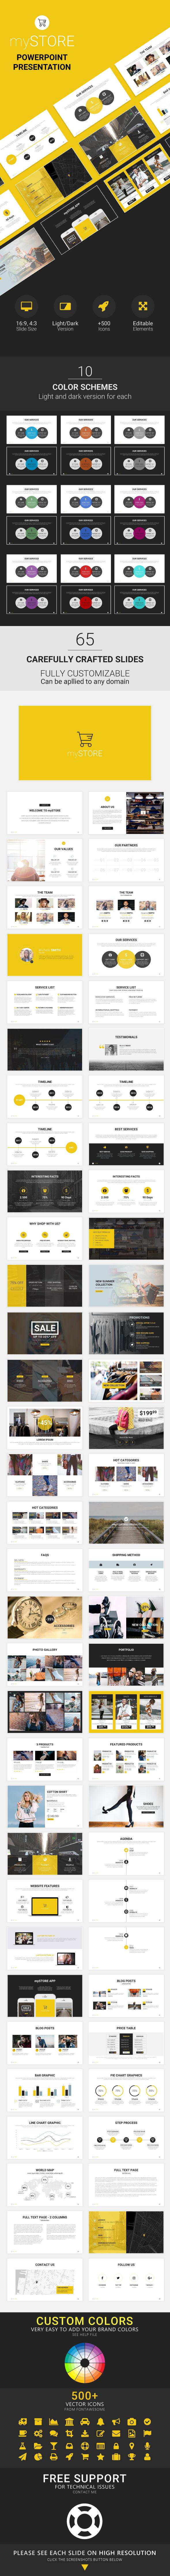 myStore - Powerpoint Presentation Template